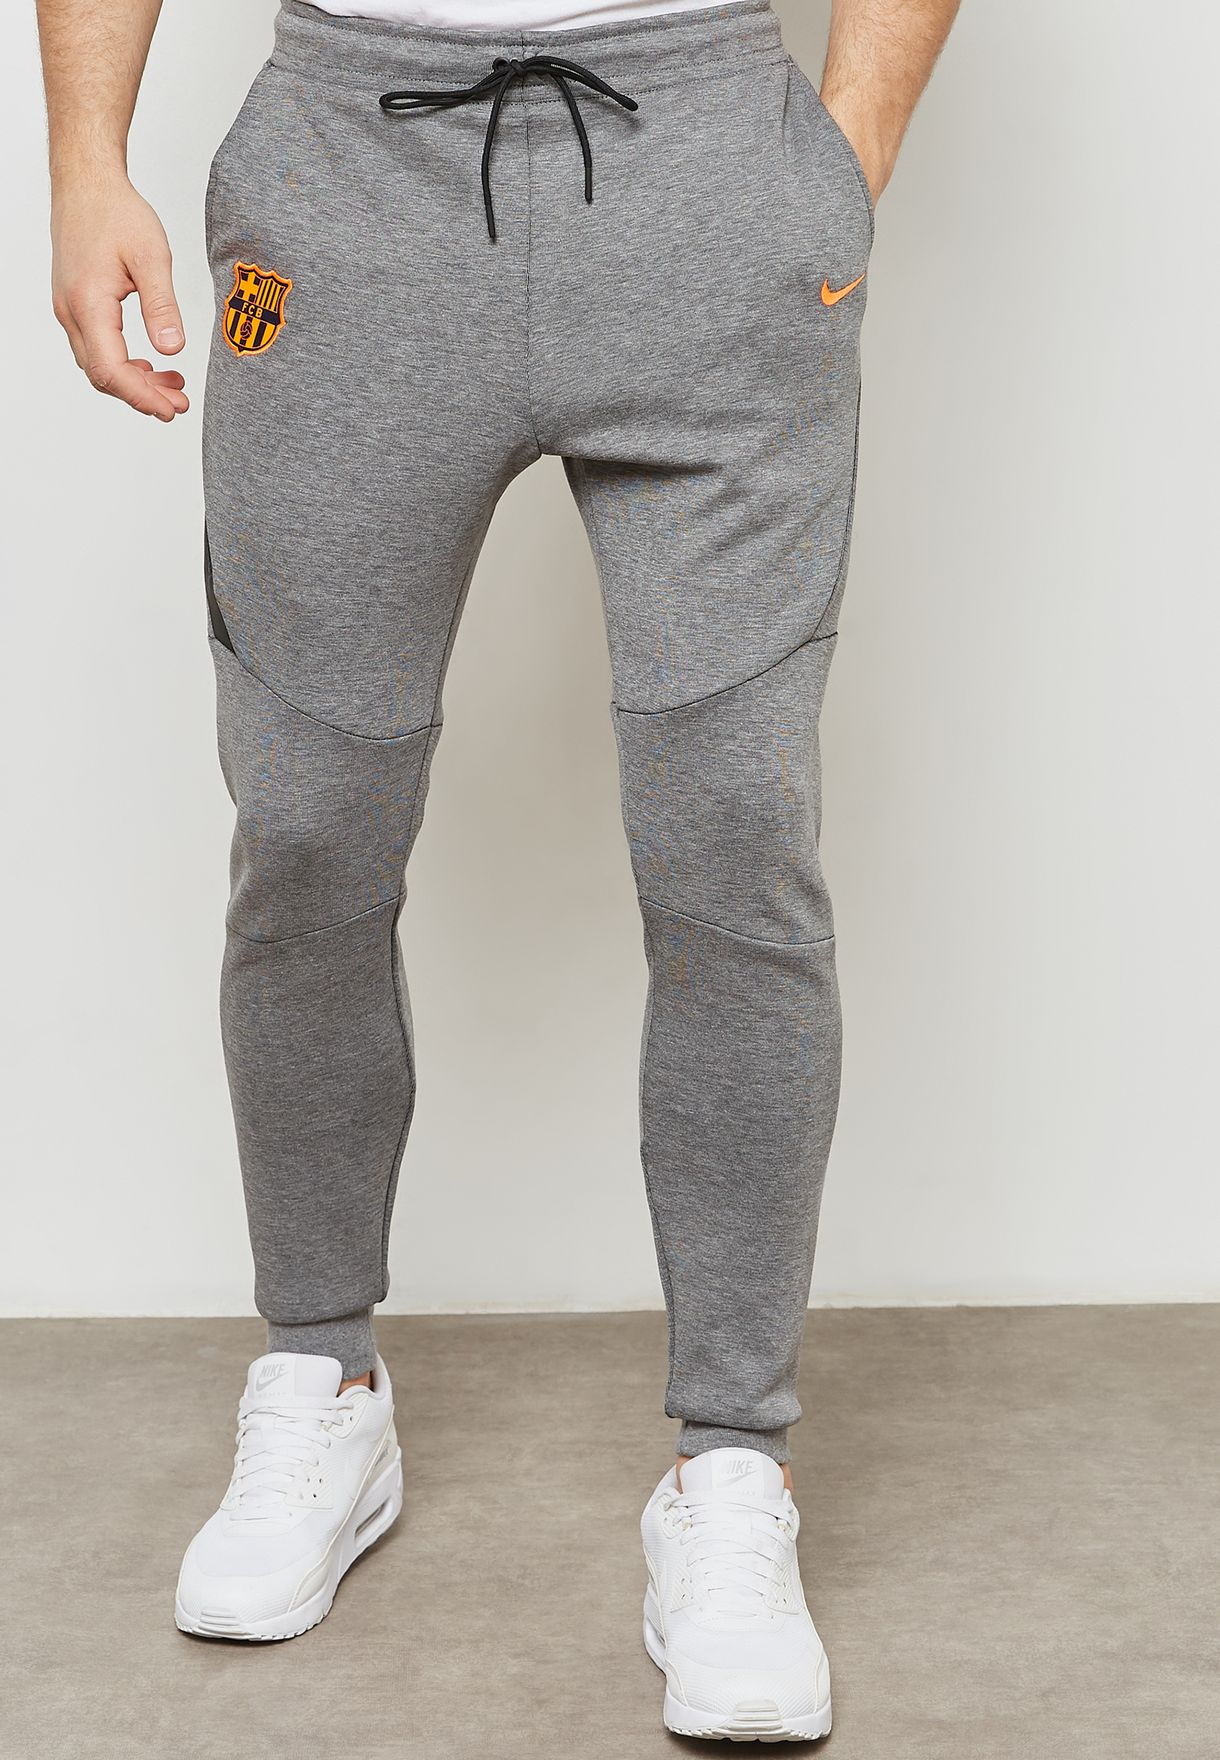 For Fc Nike Barcelona Shop Aa1935 Tech Grey 095 Sweatpants Fleece gR4nq